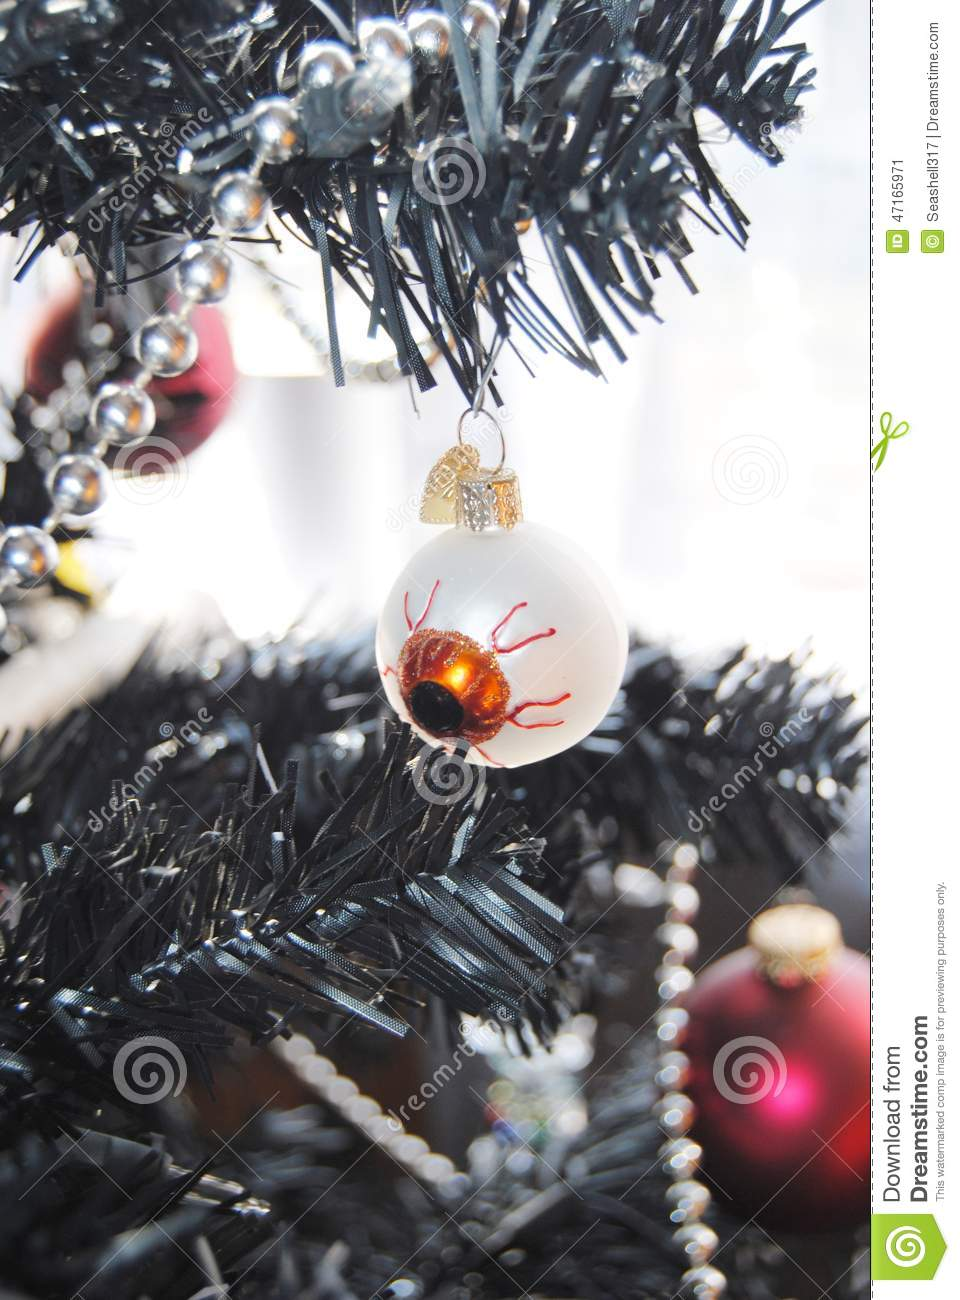 Nightmare before christmas stock image. Image of balls - 47165971